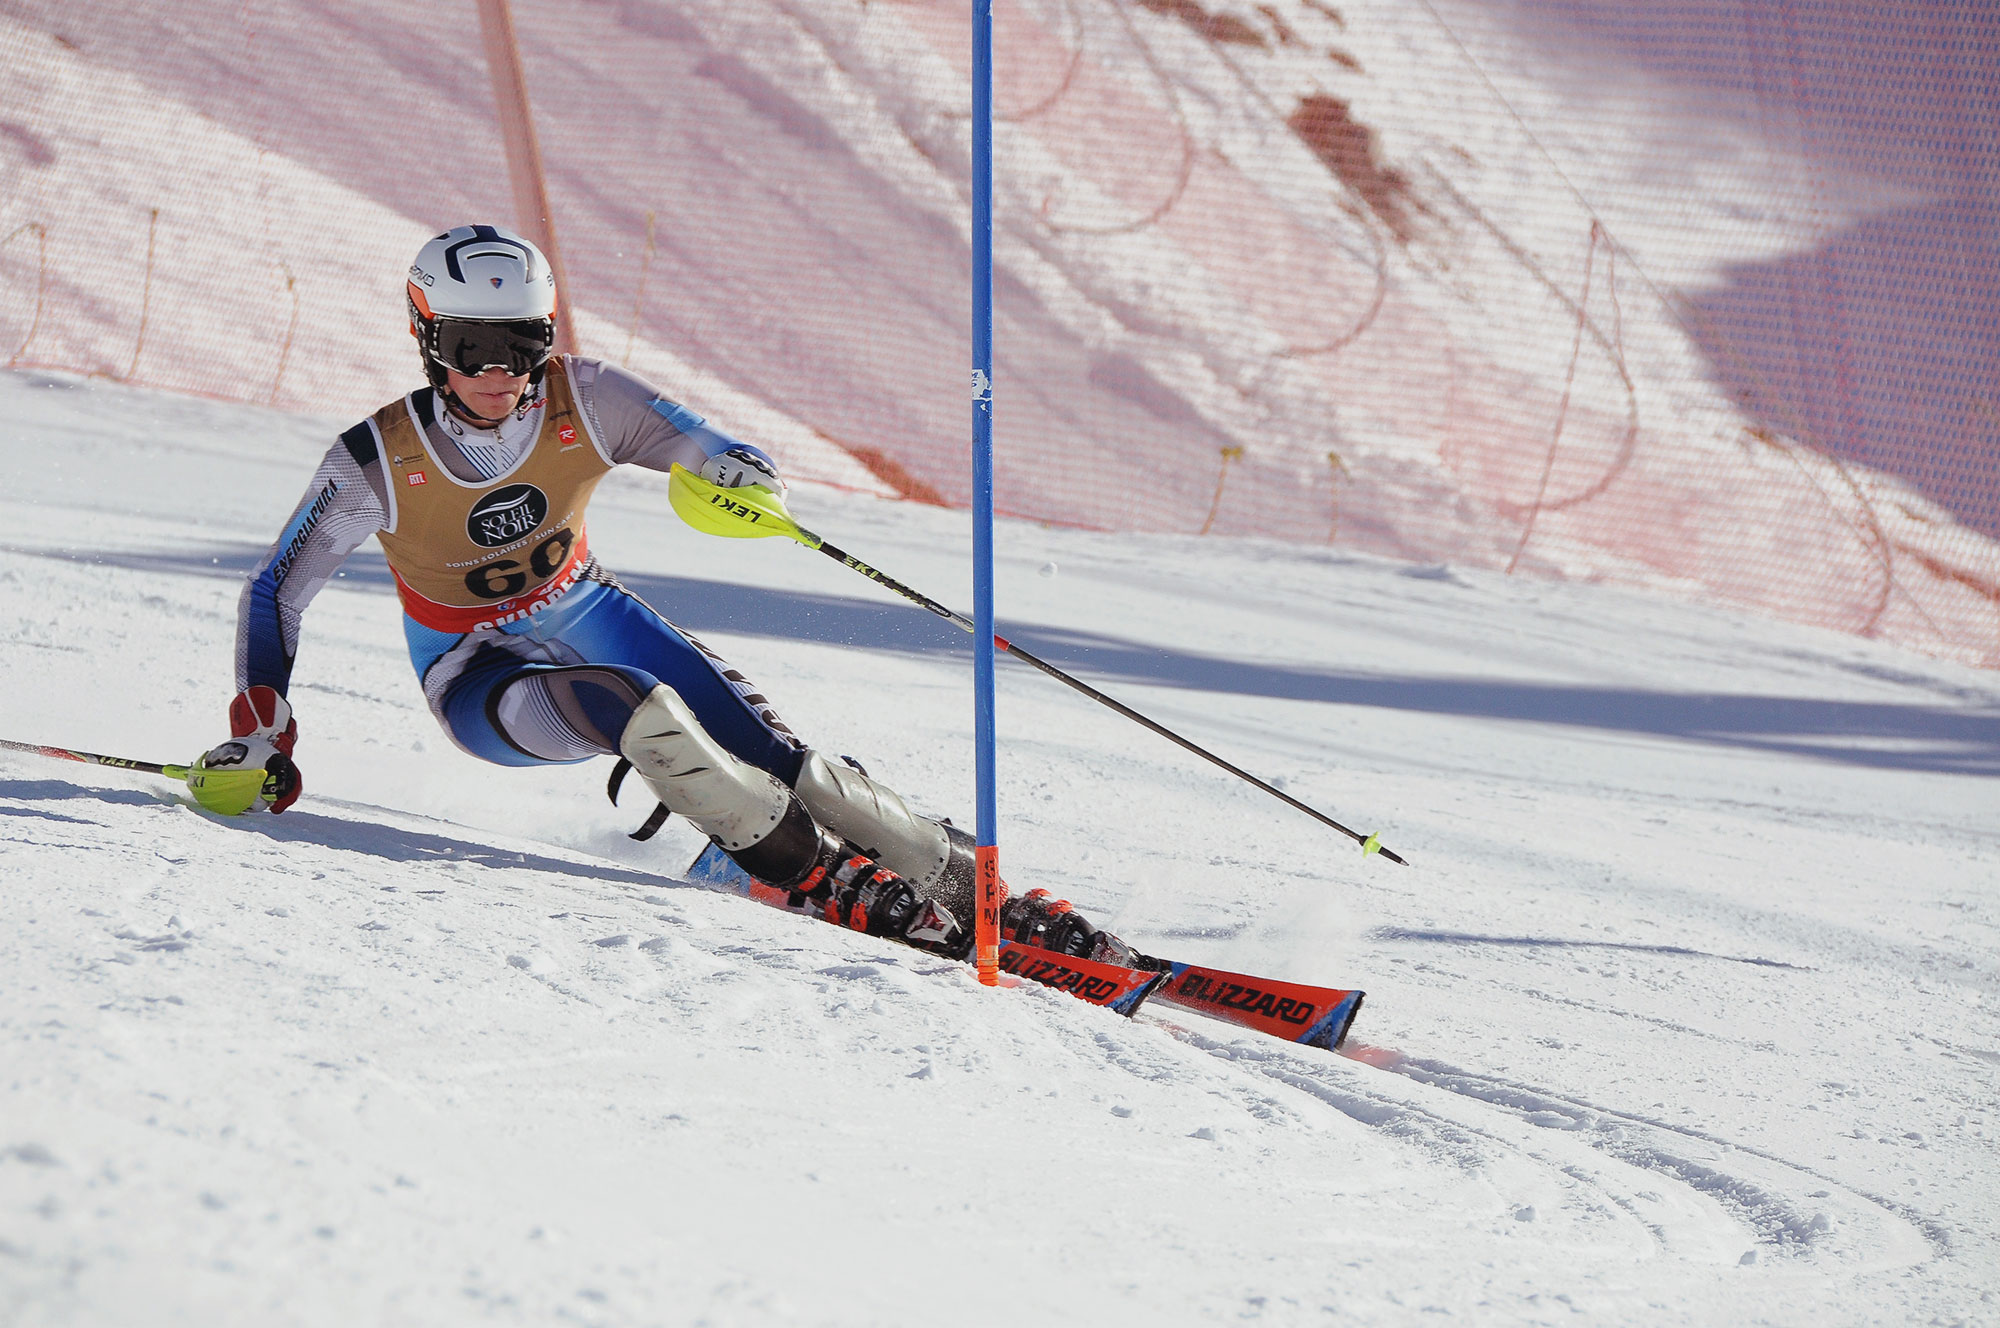 Podium Performance Ski Racing